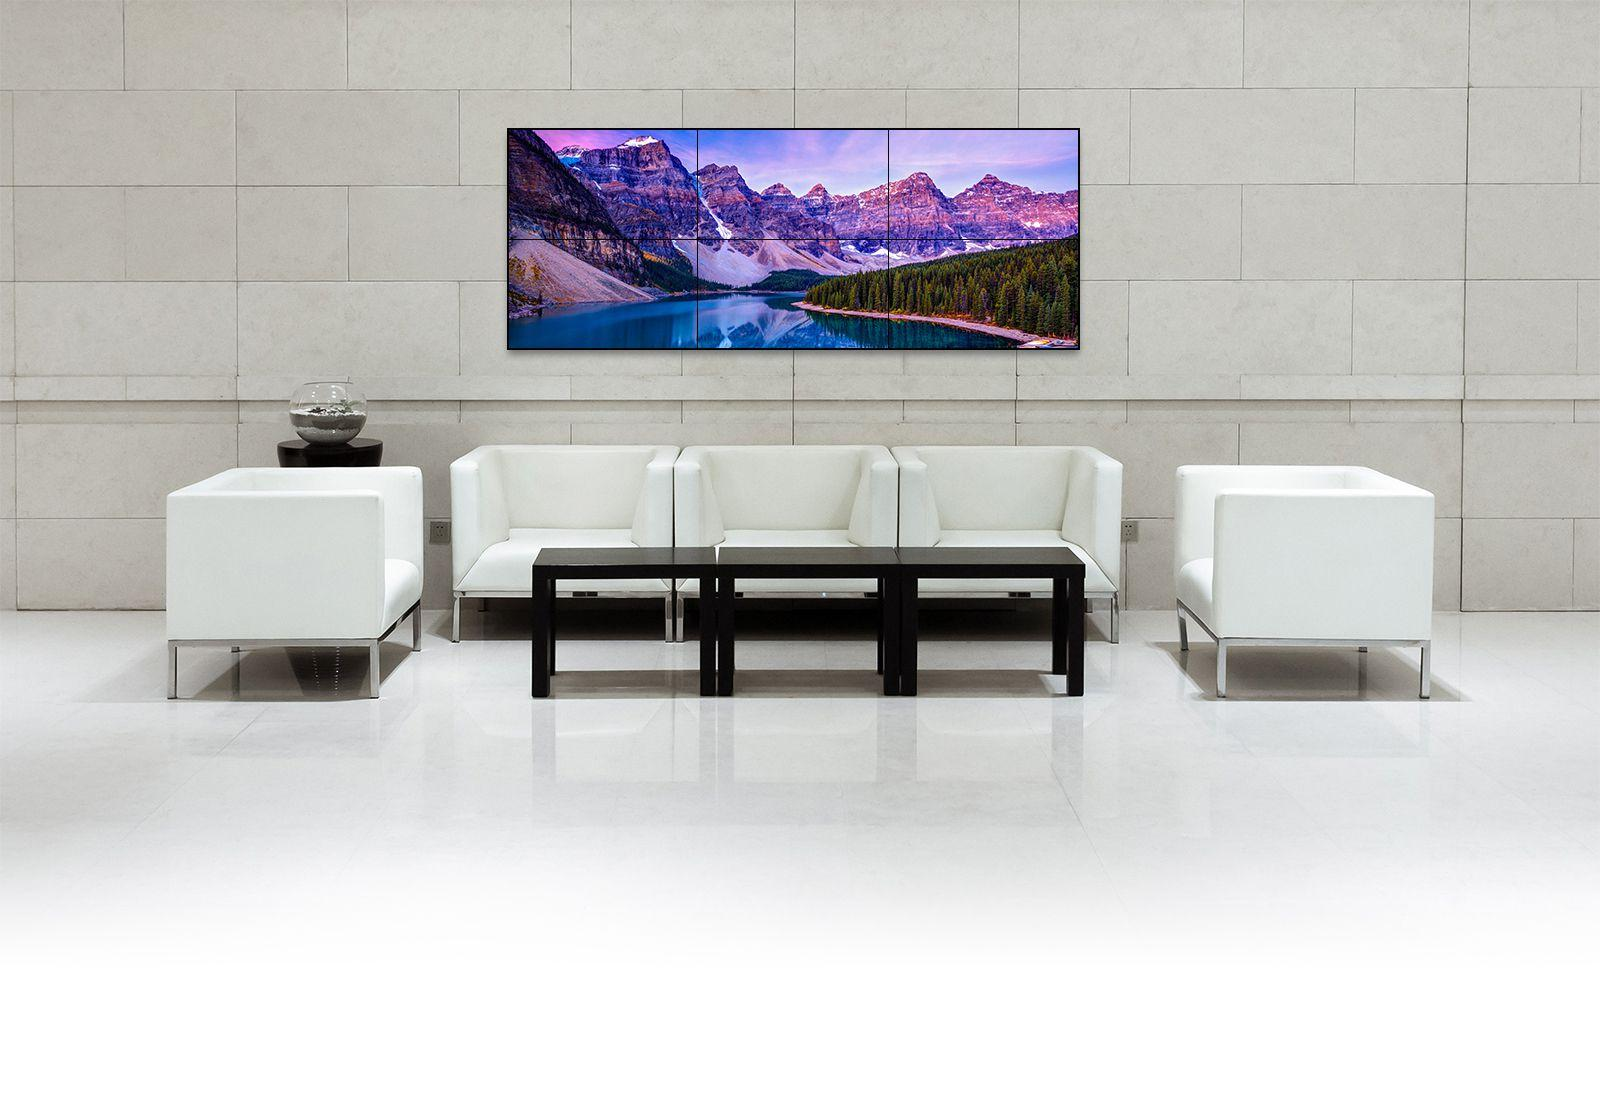 LG Video Wall